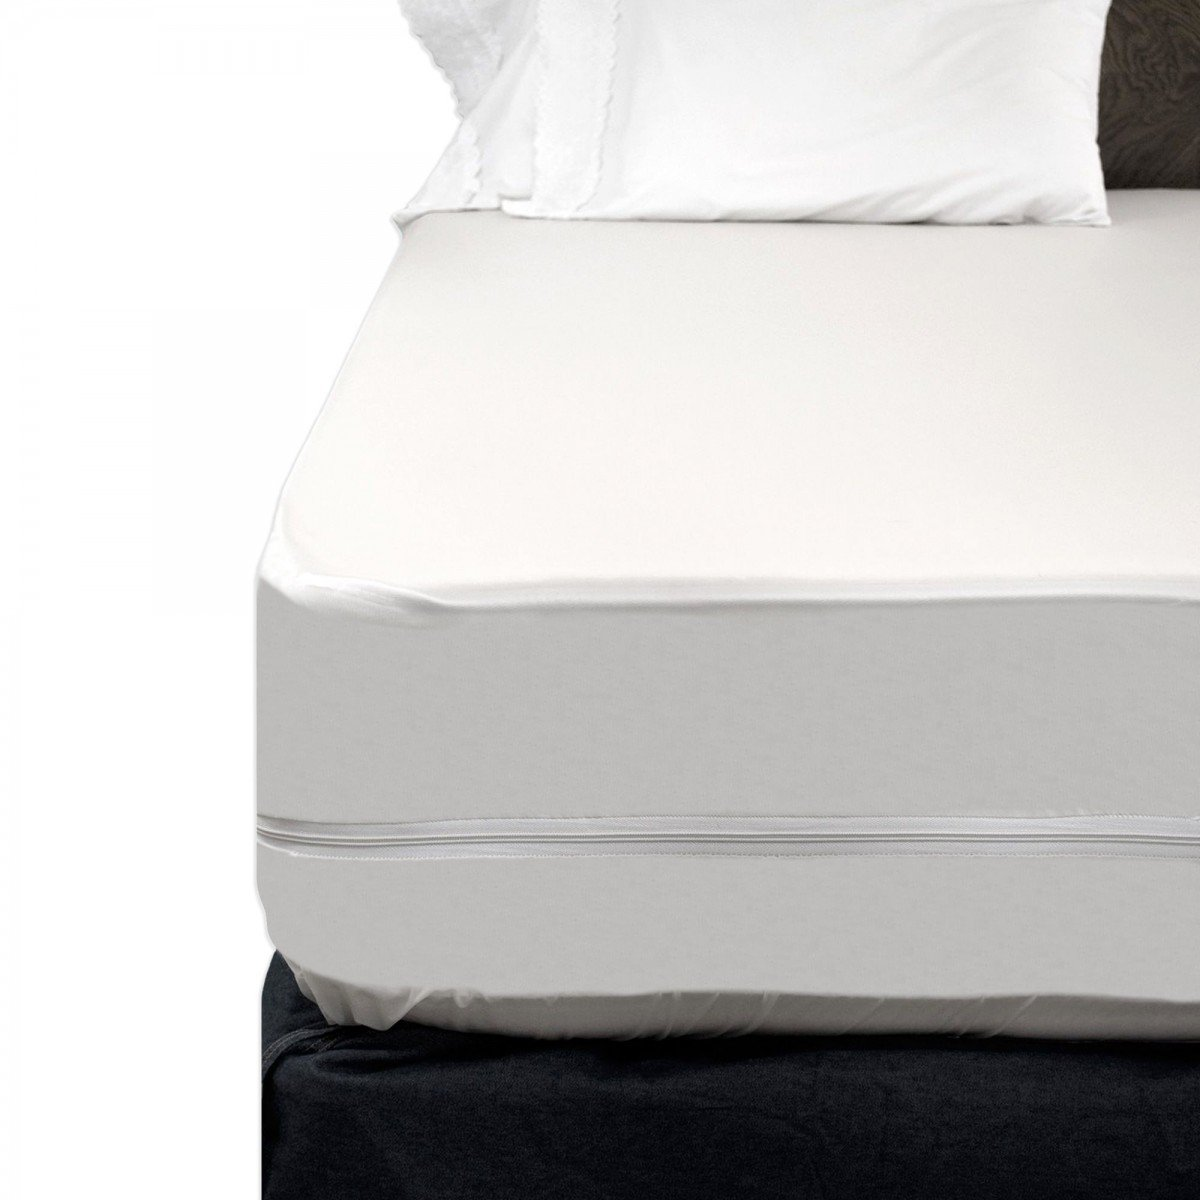 Zippered mattress cover bed bugs home furniture design for Sofa bed zippered mattress cover